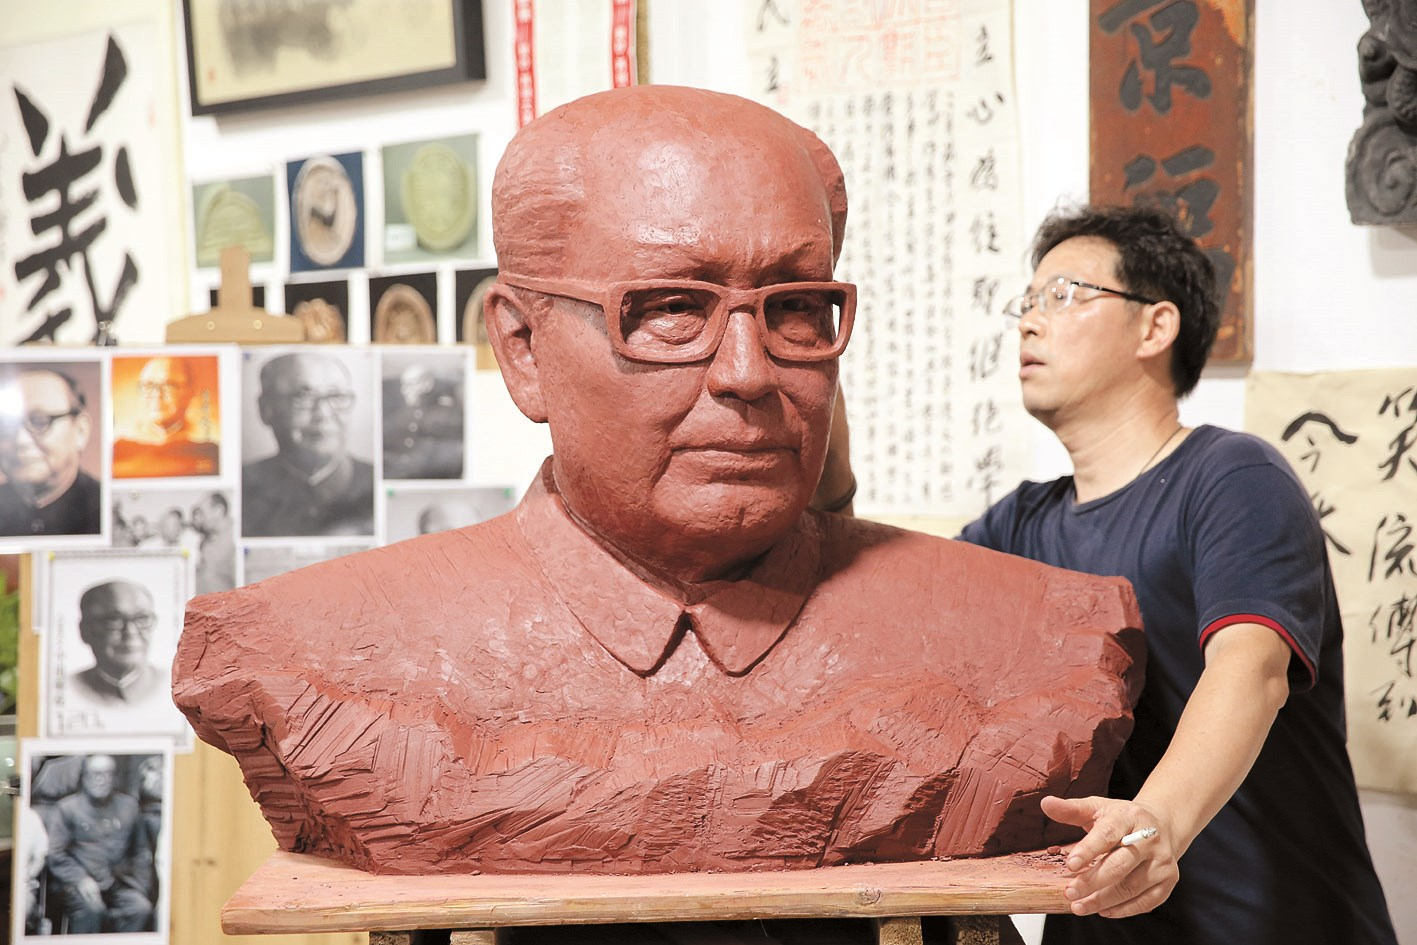 Yin Xiangming, a folk artist from Jiangsu Province, makes a purple clay statue of Ulanhu, secretary of Communist Party of China Inner Mongolia Committee, at the Ulanhu Memorial Hall. Ulanhu from 1959 helped bring thousands of orphans to the region where there was enough milk and meat to feed them. — Imaginechina